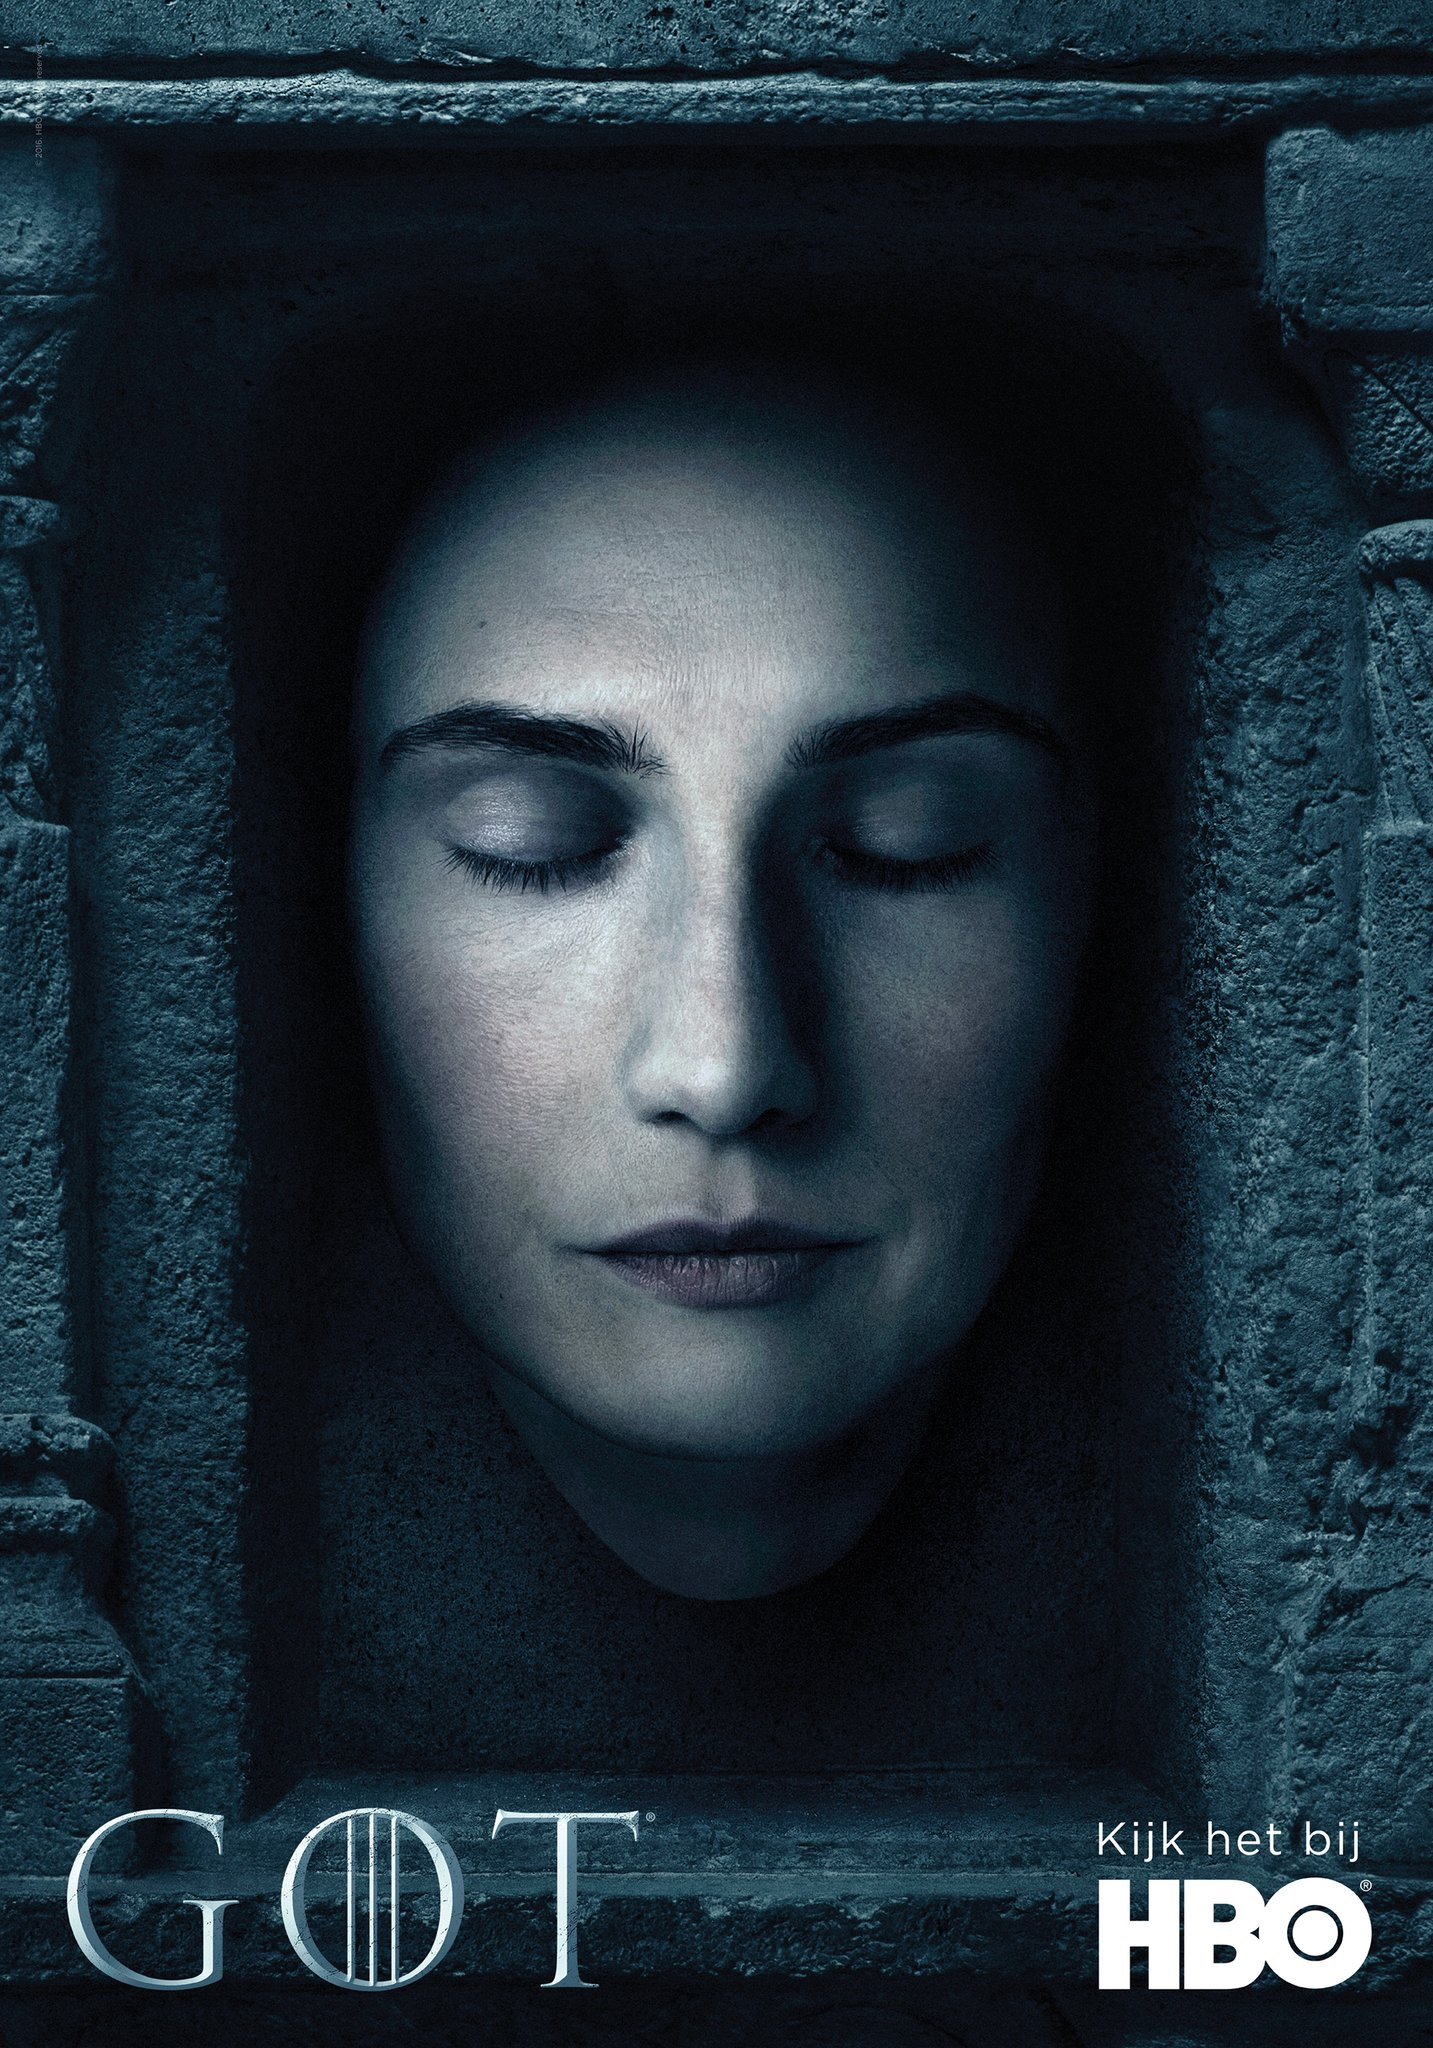 game of thrones poster high quality HD printable wallpapers season 6 hall of face